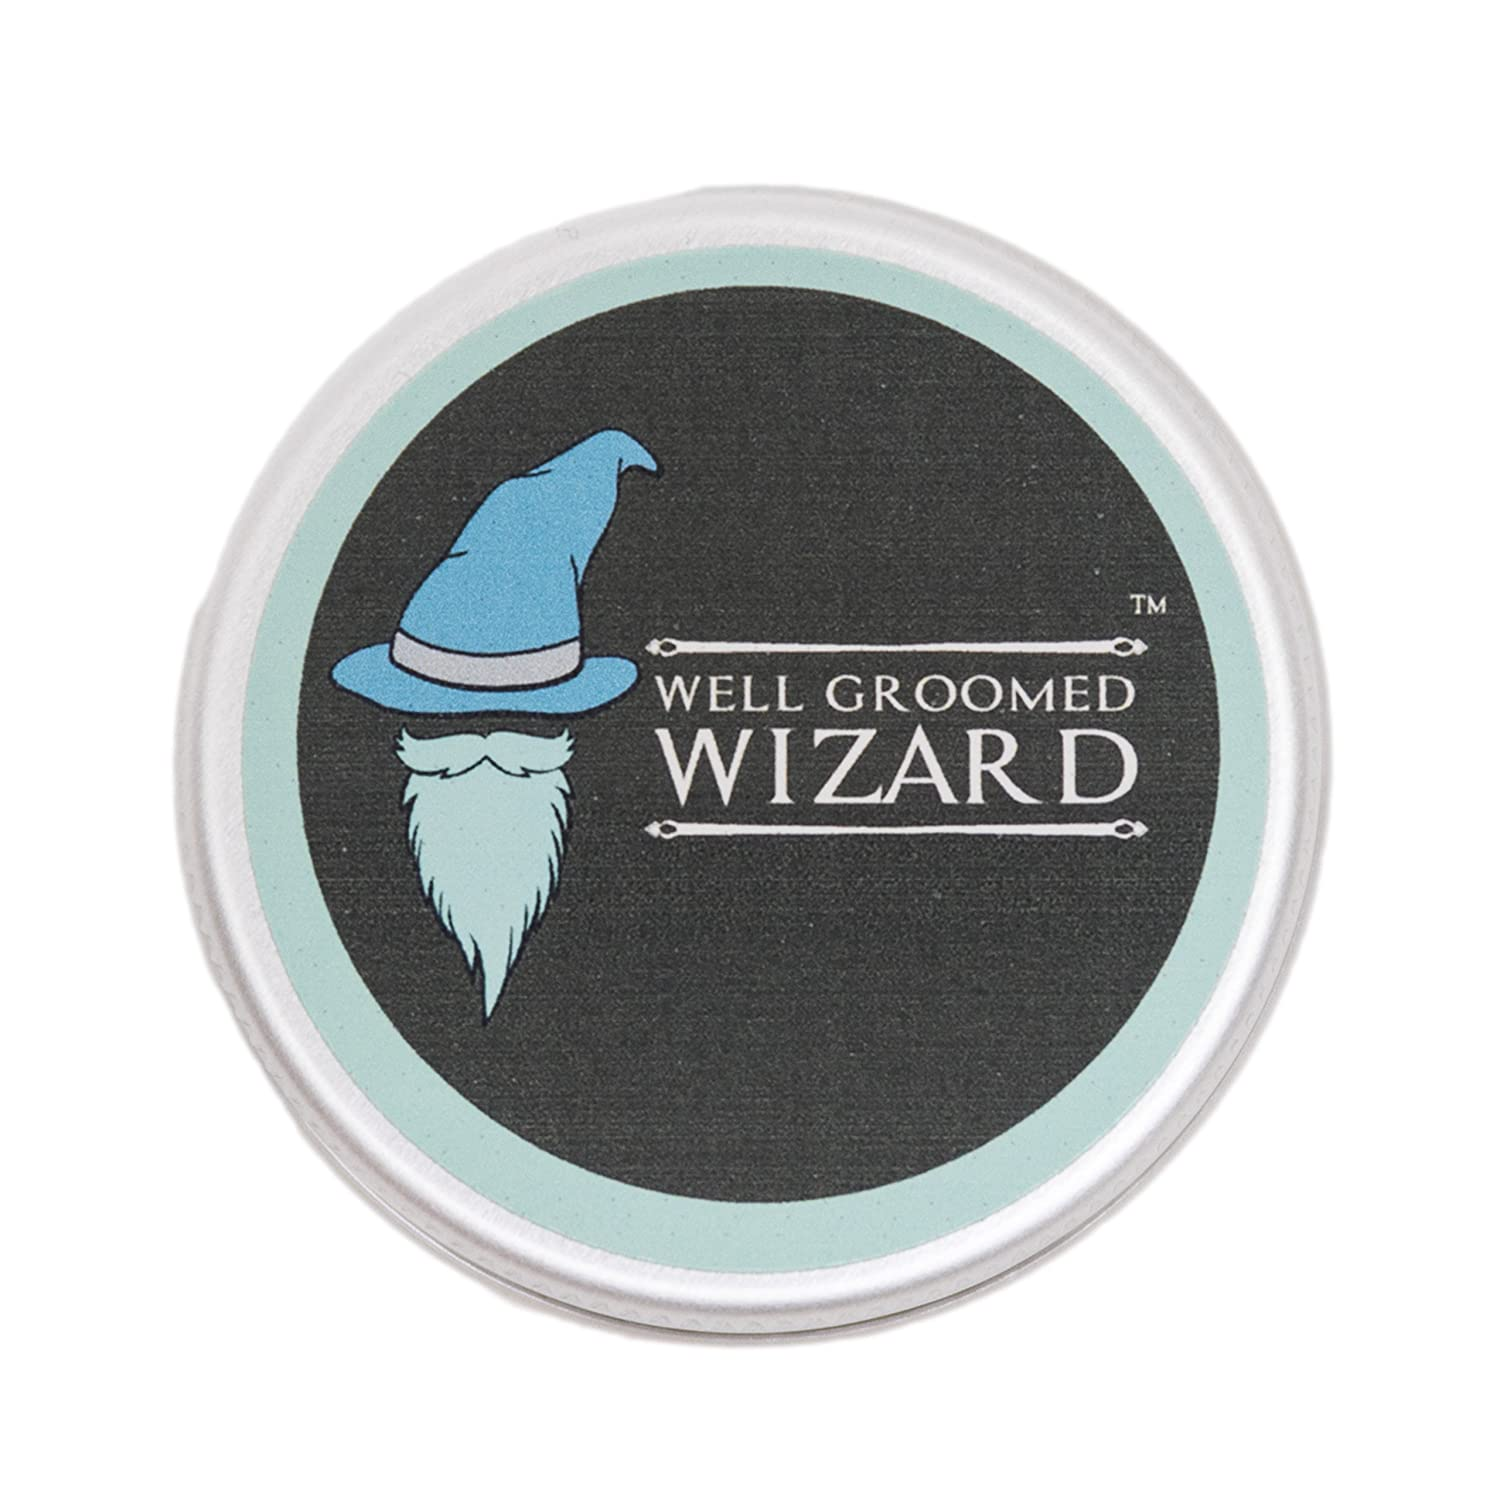 Well Groomed Wizard Beard Wax For Men, Strong Hold Moustache and Beard Wax, beeswax & lemon - 15ml